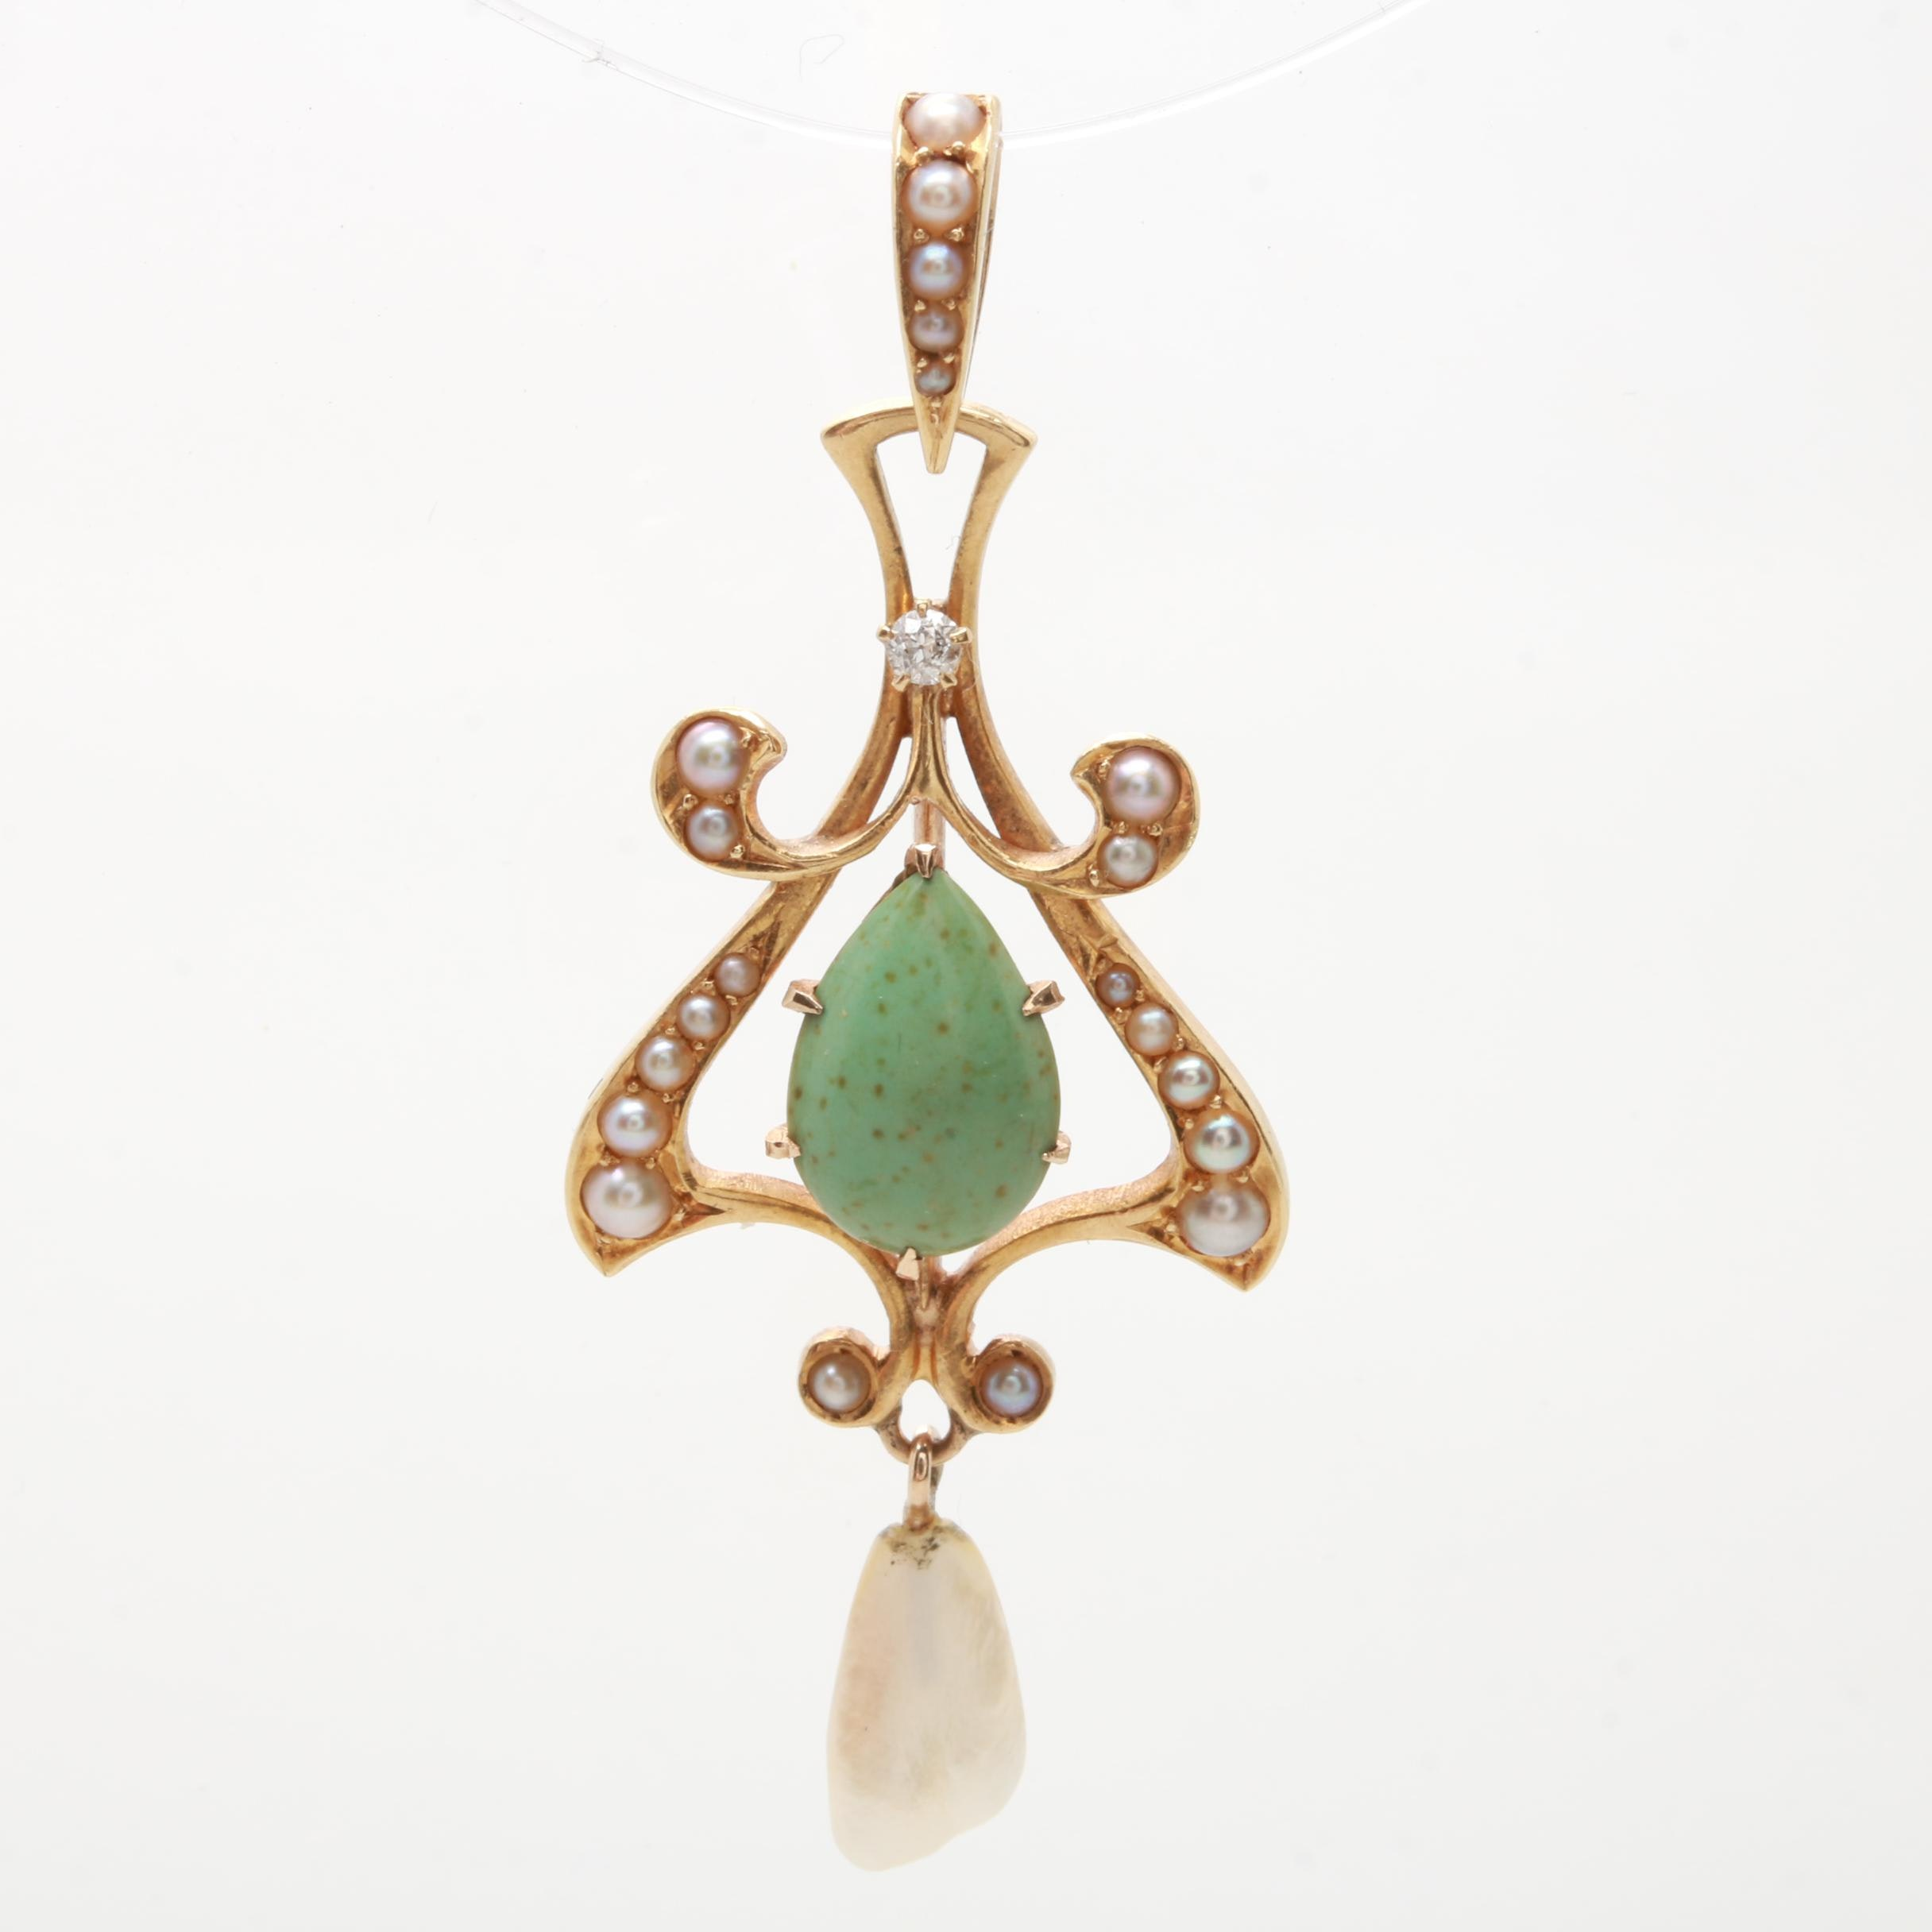 Art Nouveau Krementz 14K Yellow Gold Diamond, Jasper and Pearl Pendant